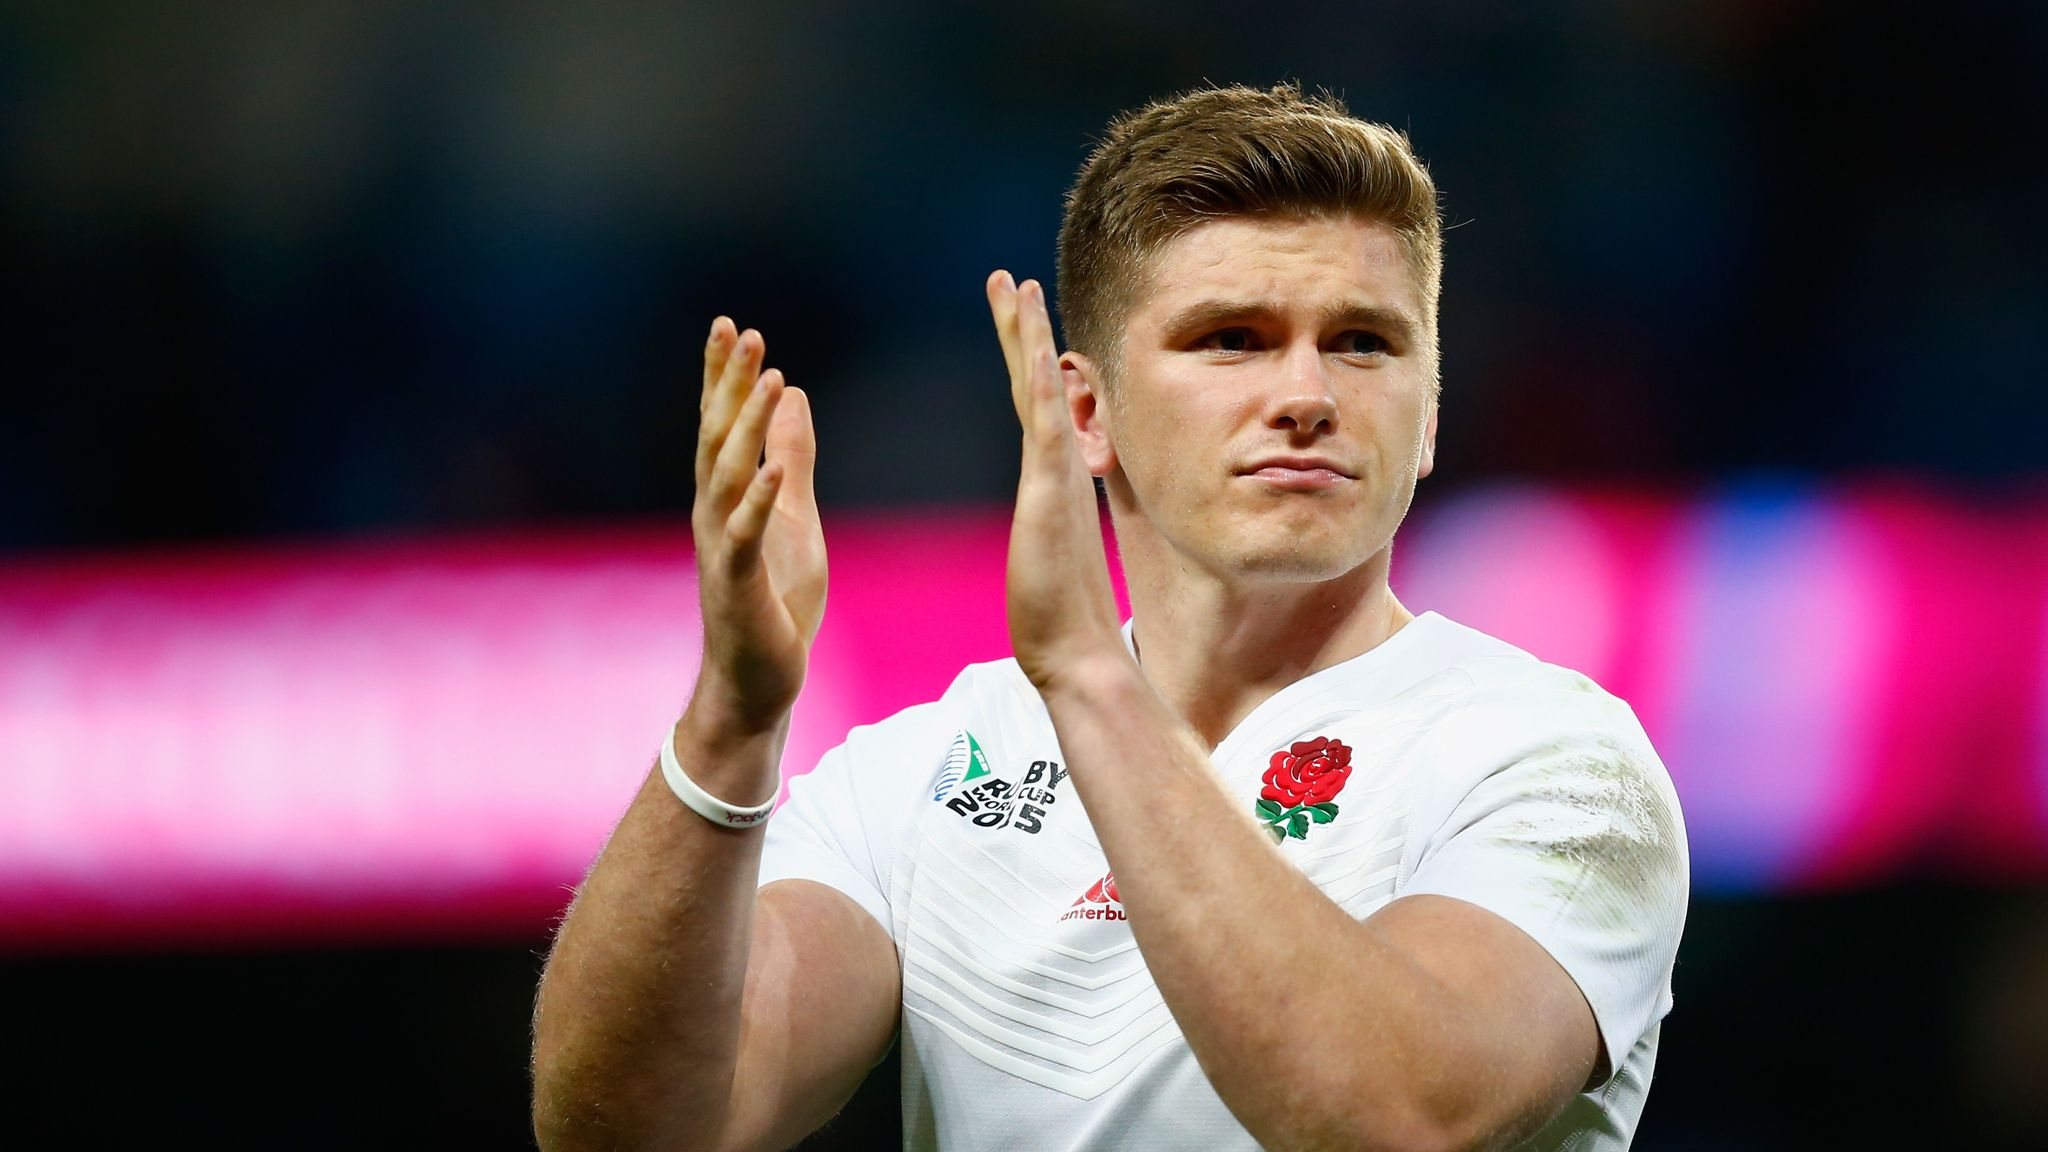 Owen Farrell and Anthony Watson on England vs New Zealand - Rugby World Cup semi-final